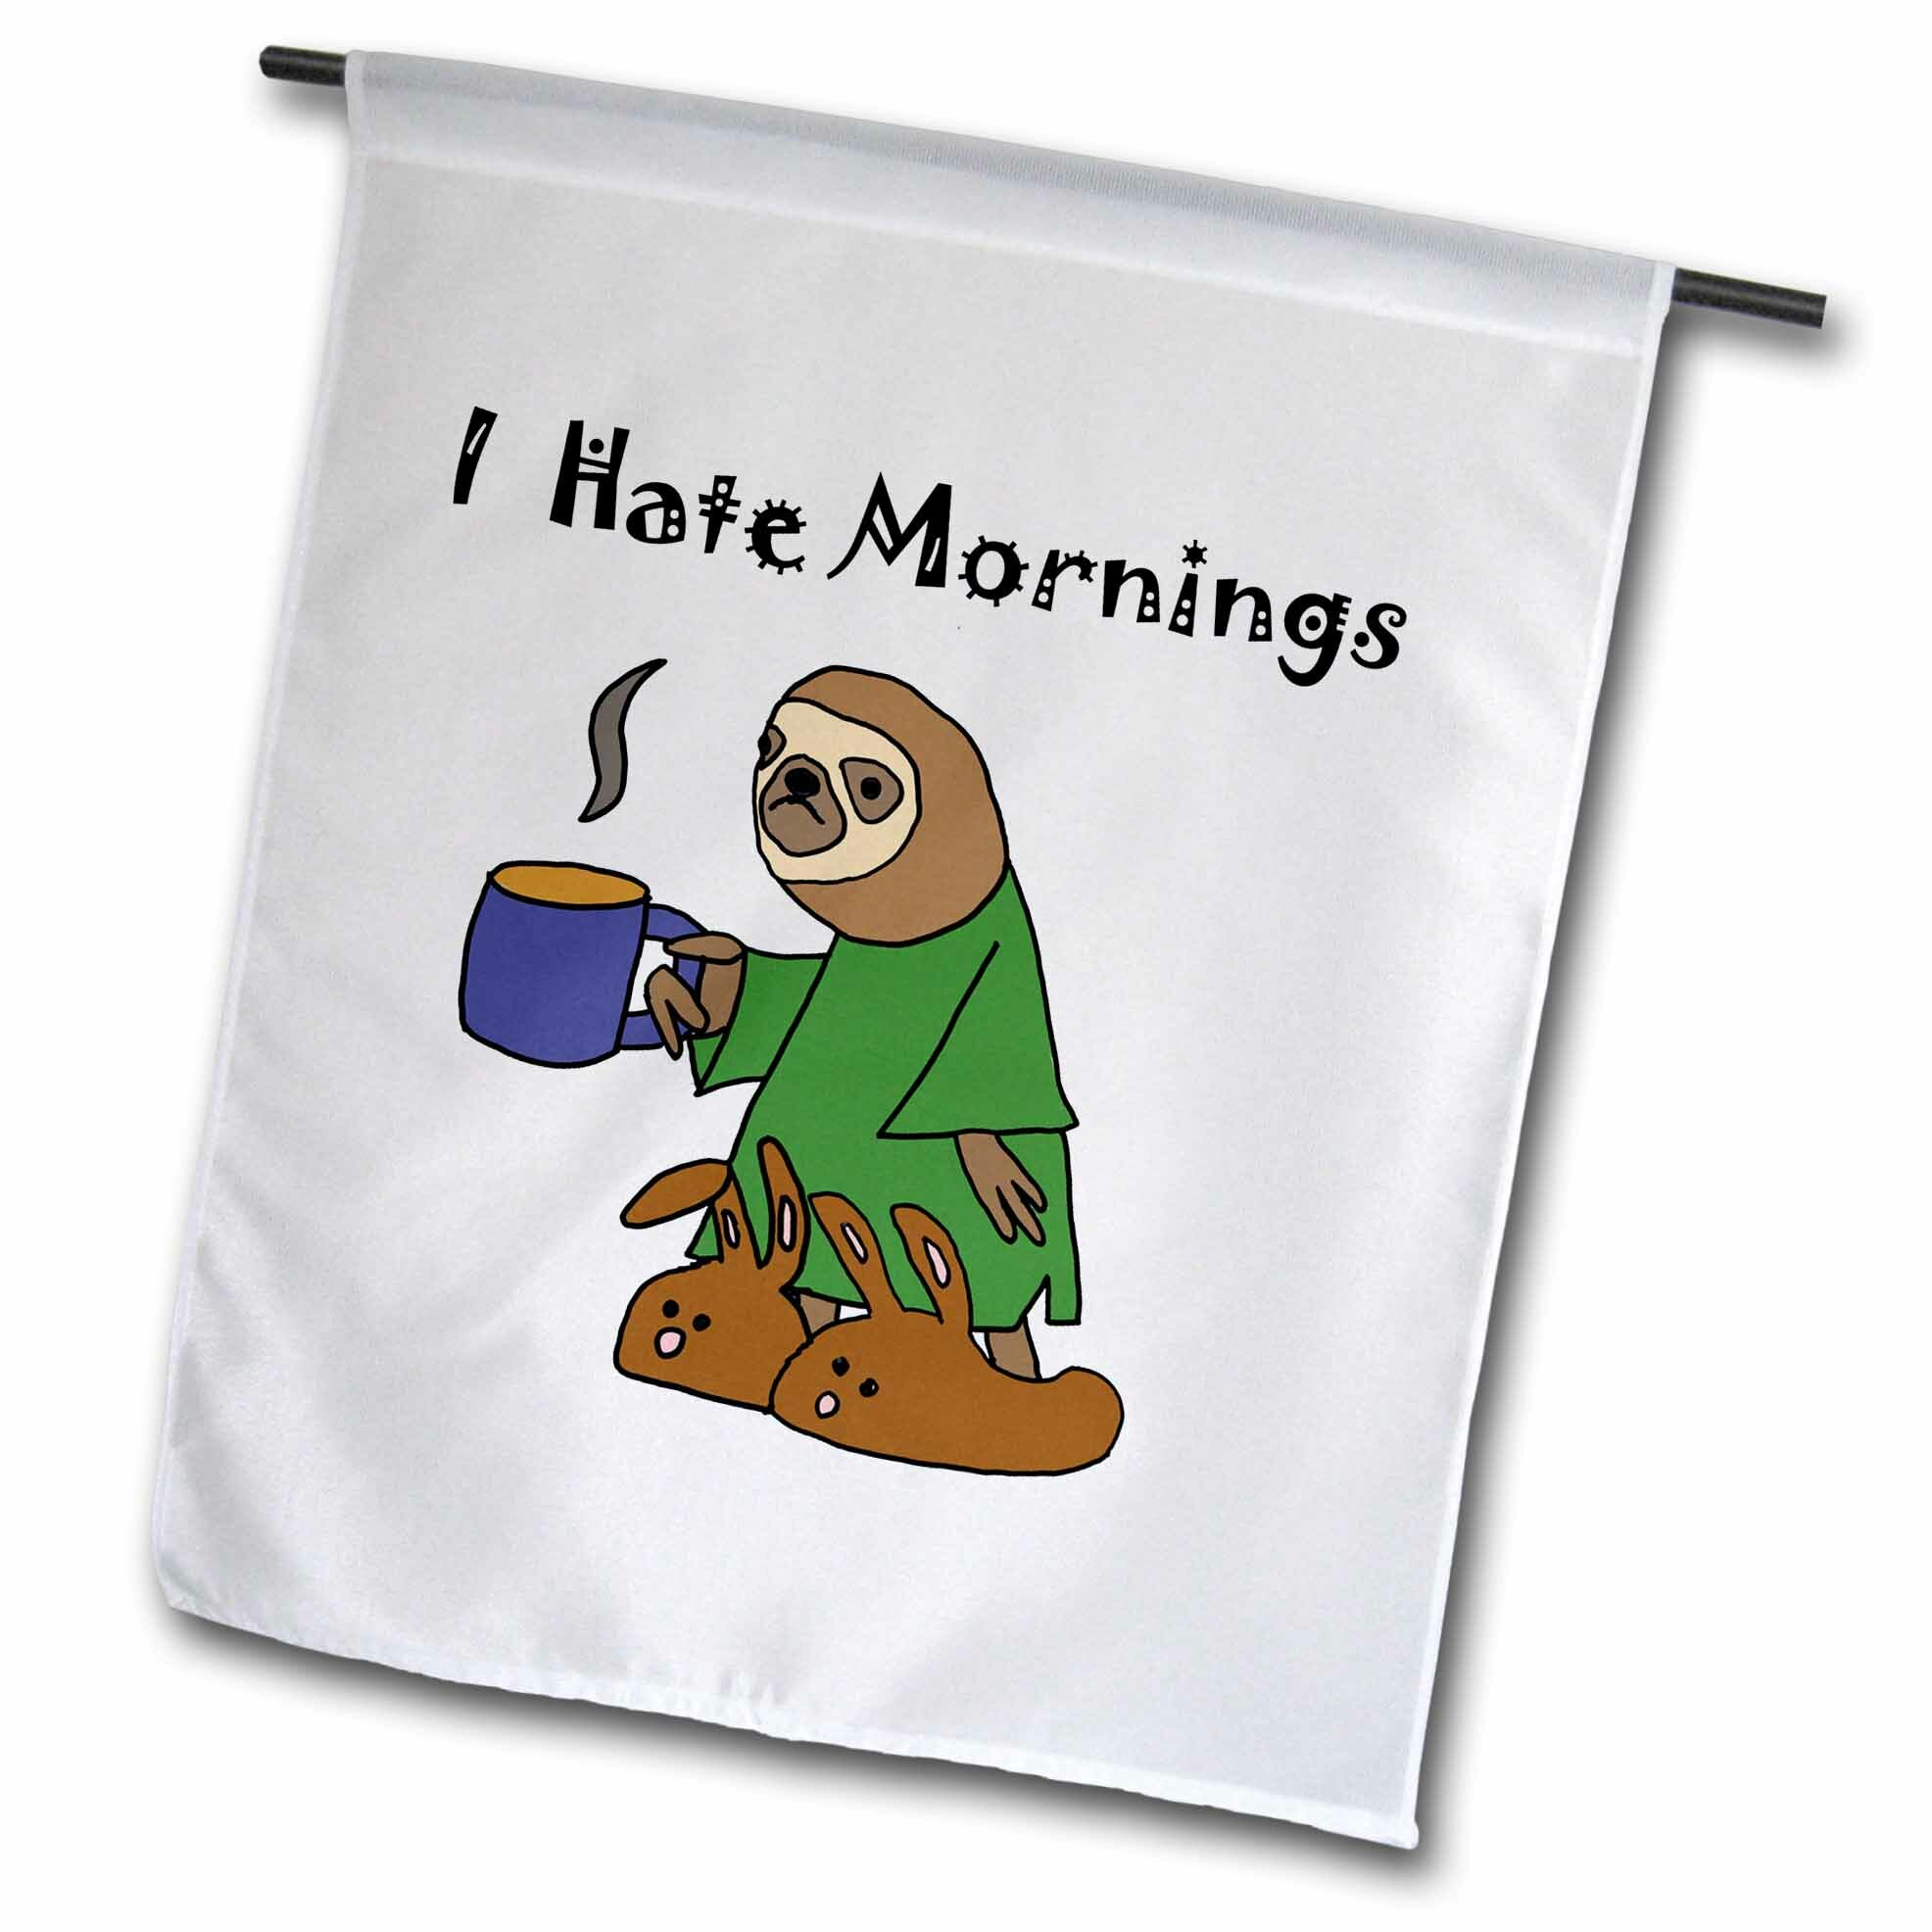 3drose Funny Sloth In Nightgown And Bunny Slippers Hates Mornings Polyester 18 X 12 In Garden Flag Wayfair